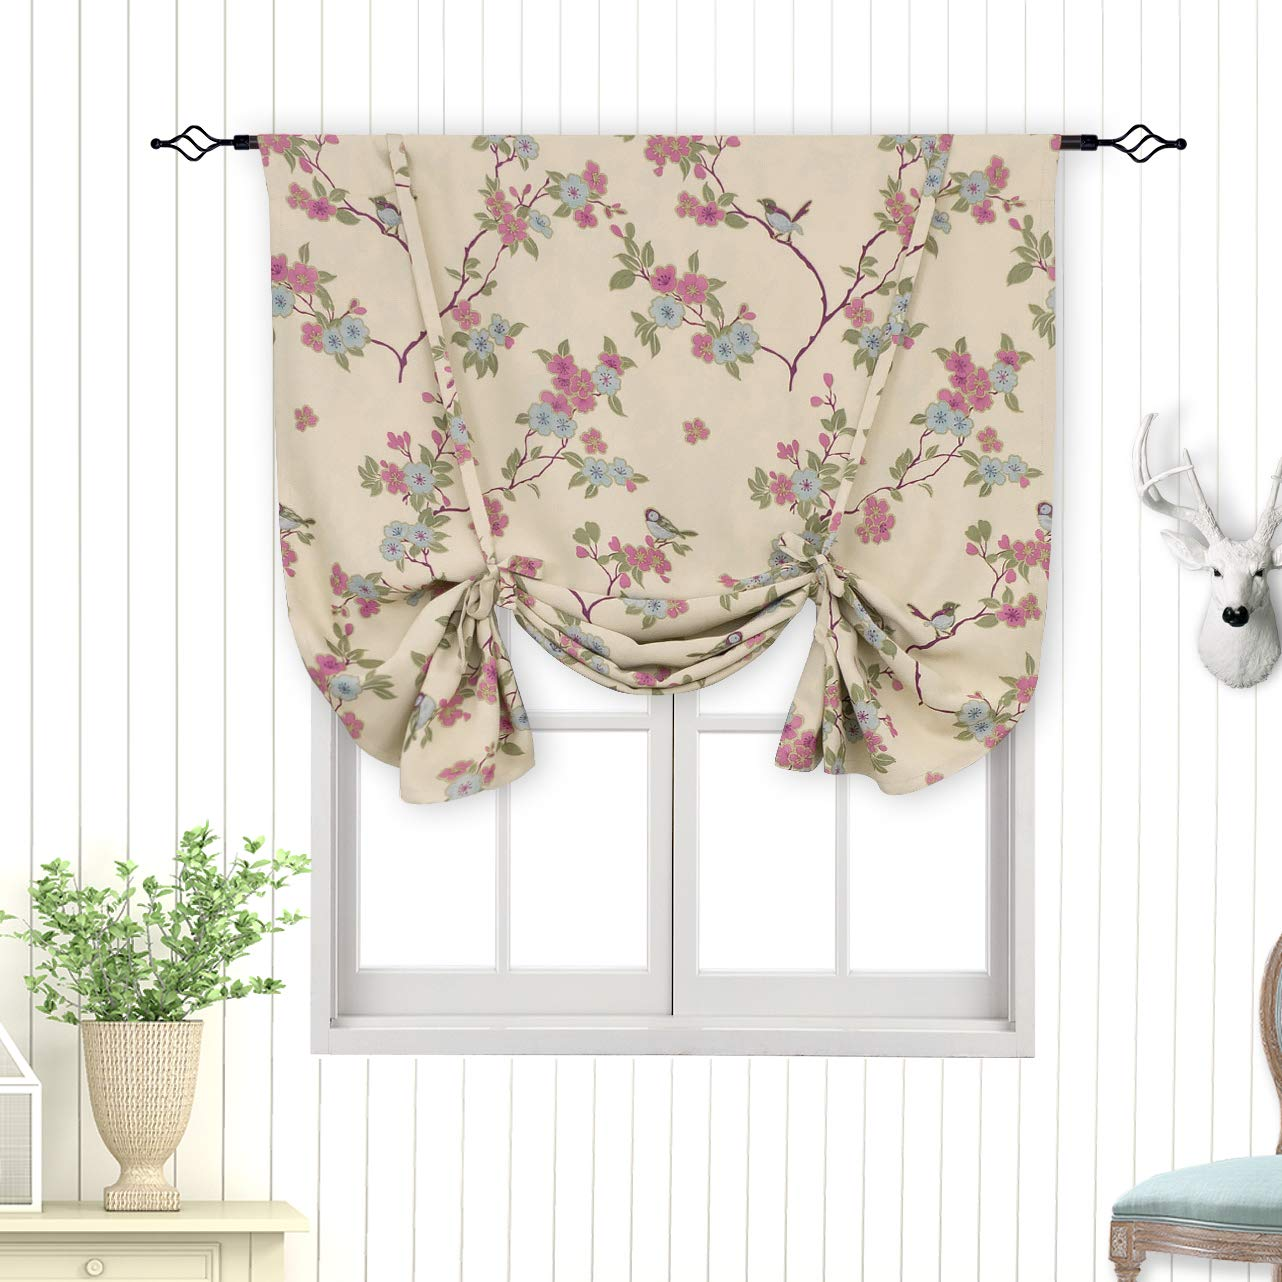 BGment Tie Up Curtain, Rod Pocket Balloon Shades for Small Window, Thermal Insulated Printed Floral Bird Patterns Blackout Curtain for Bedroom, Single Panel, 42 x 63 Inch, Beige